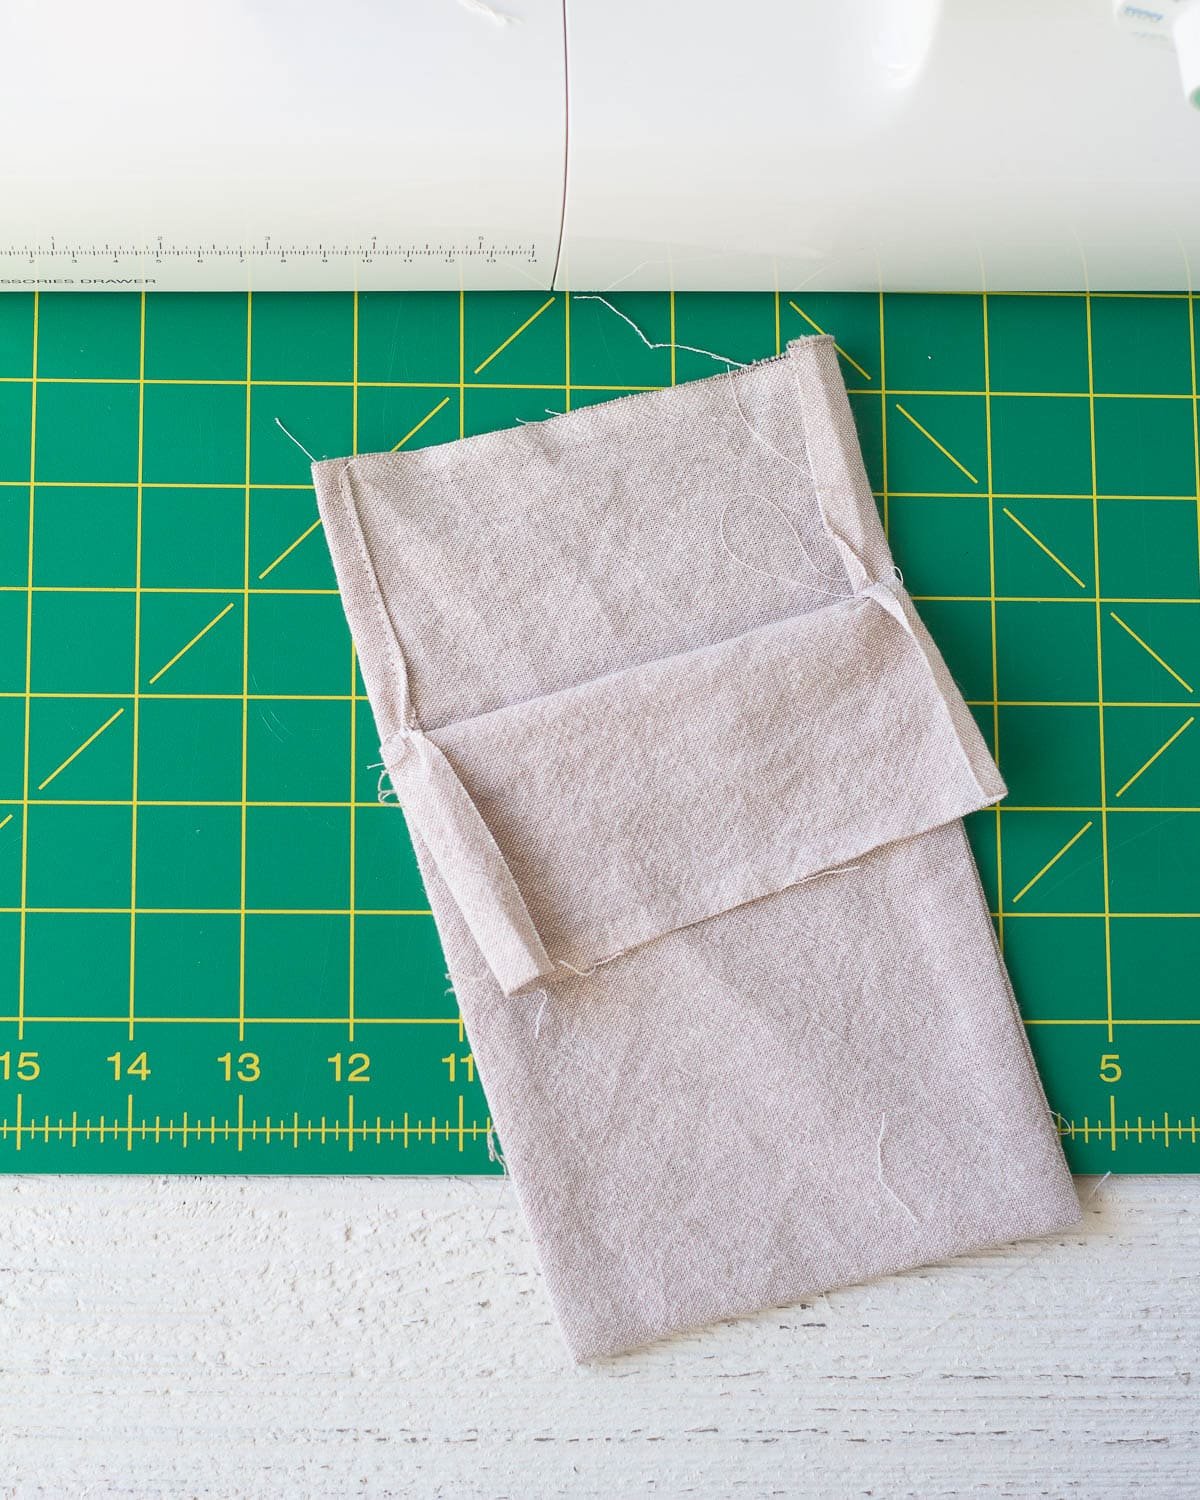 A drawstring bag being sewn.